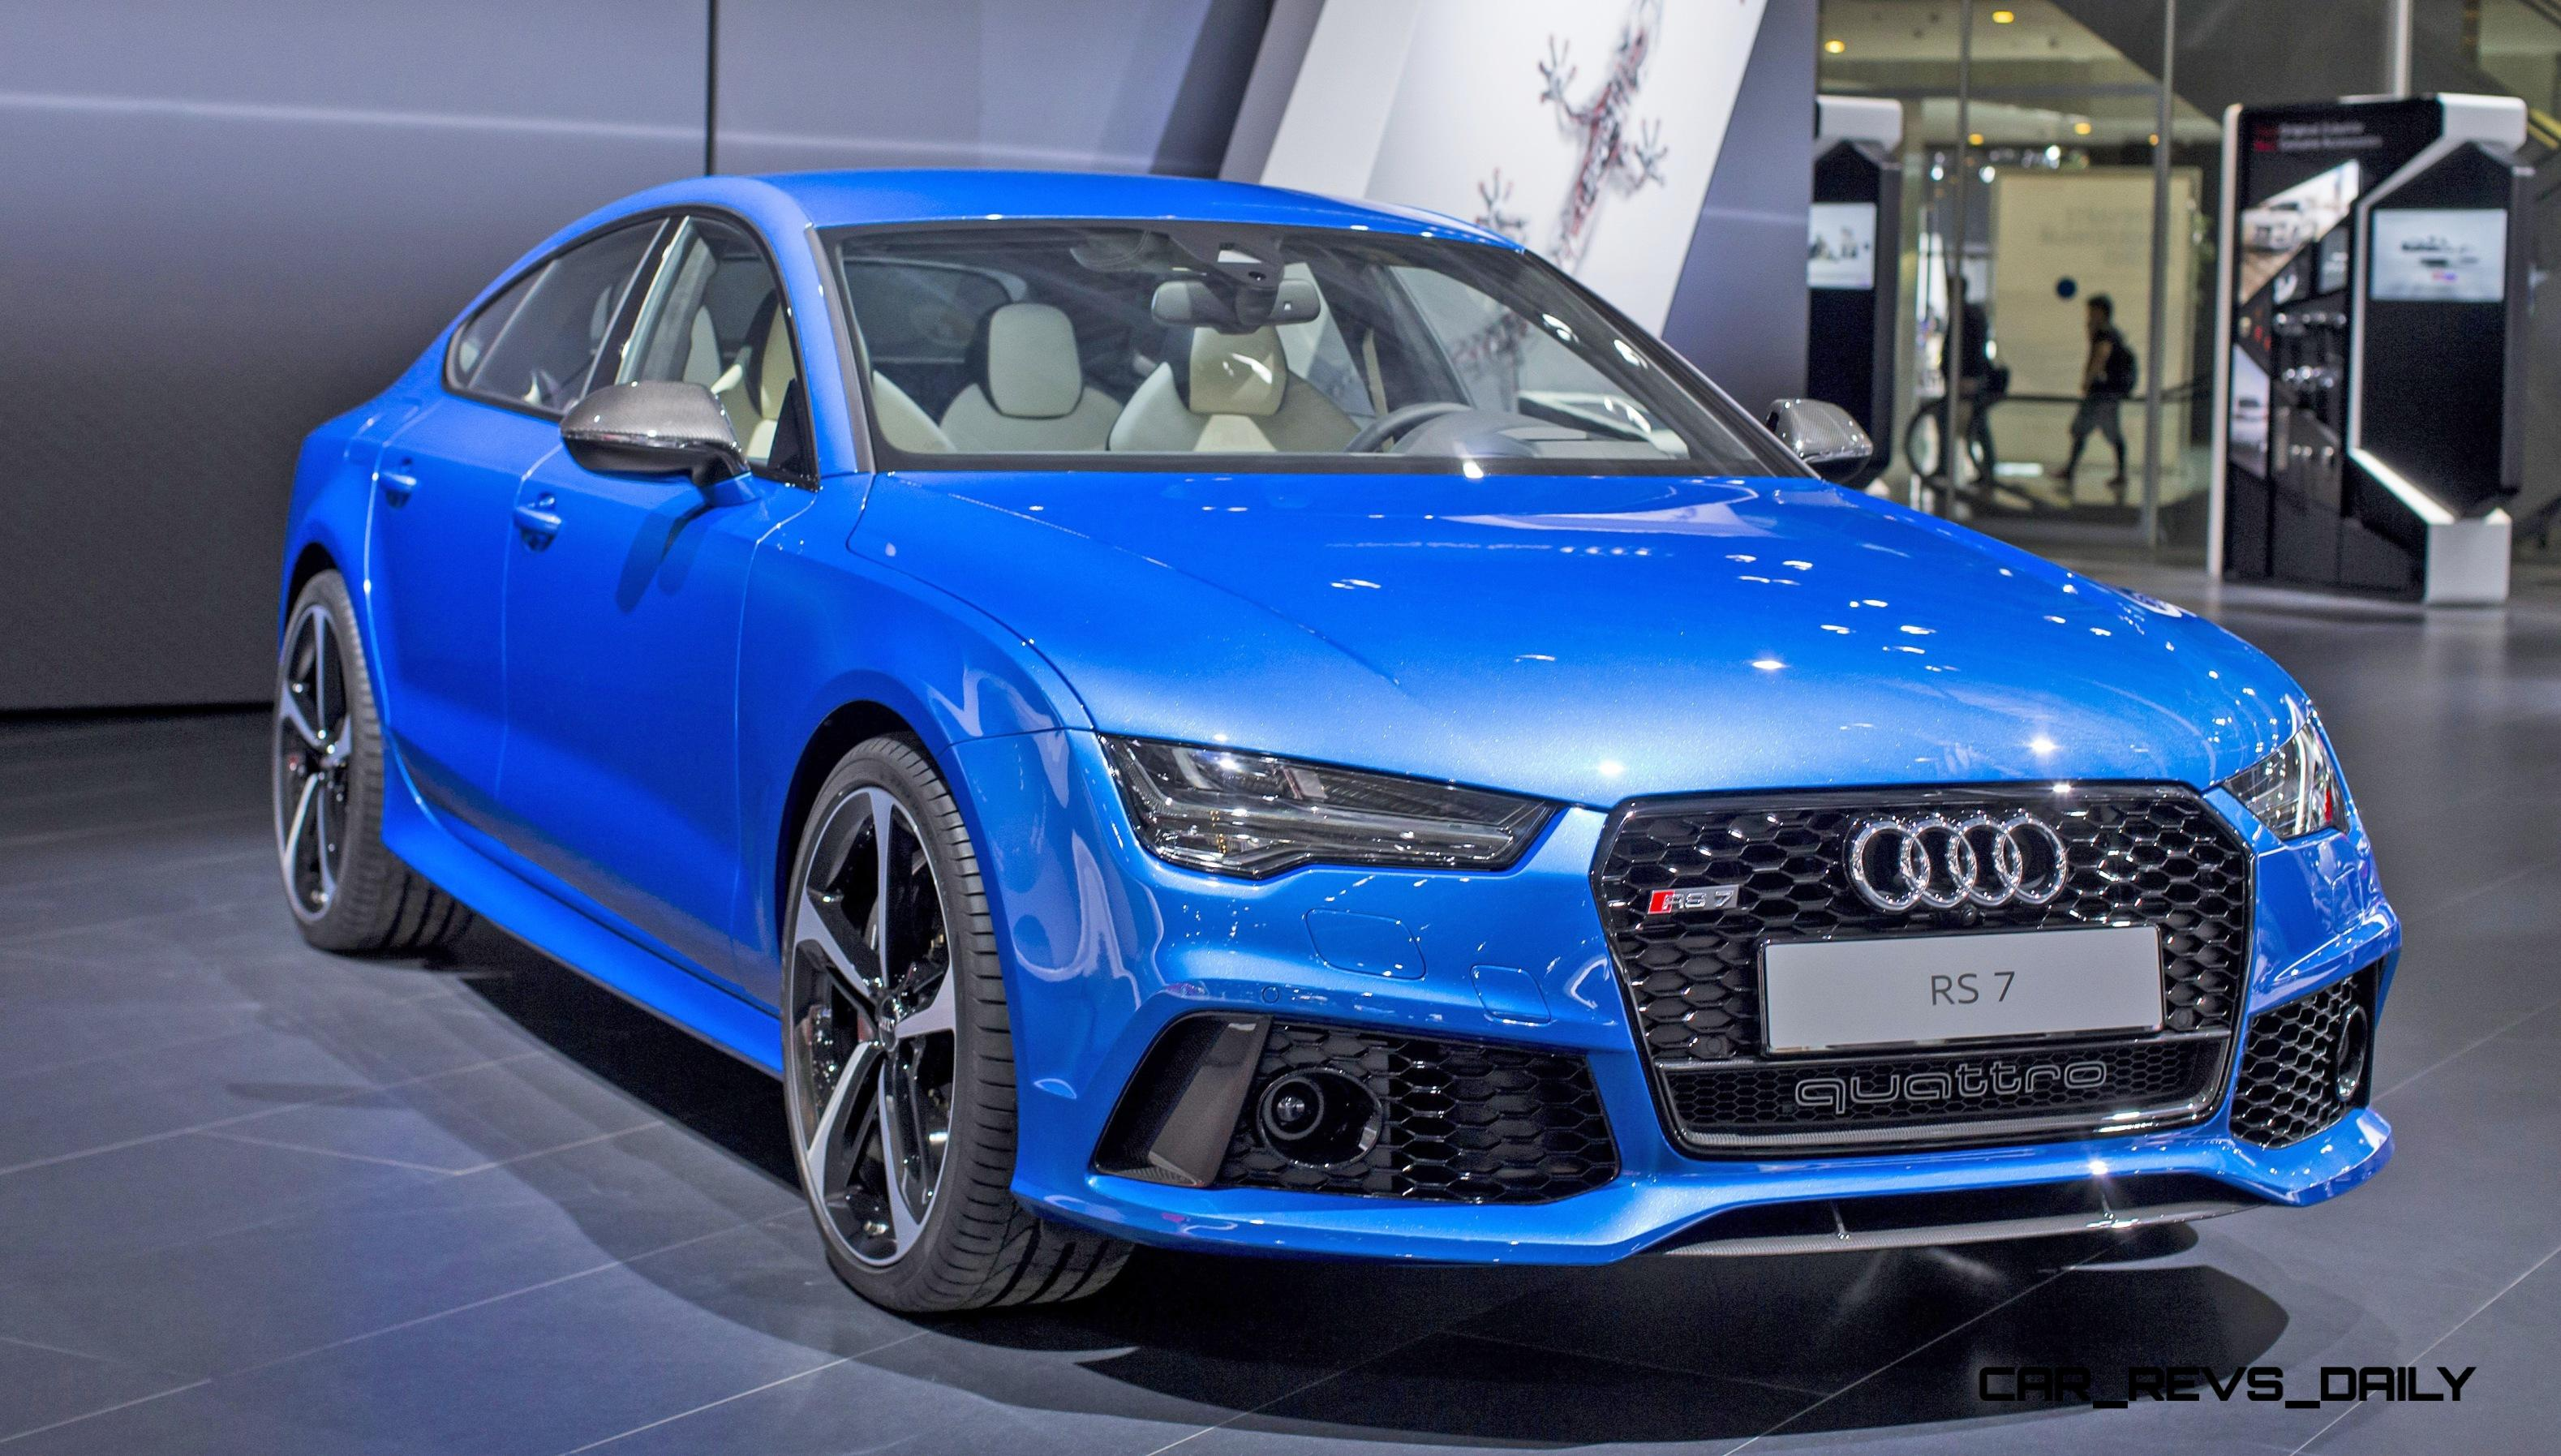 2017 Audi Rs 7 Blue 200 Interior And Exterior Images